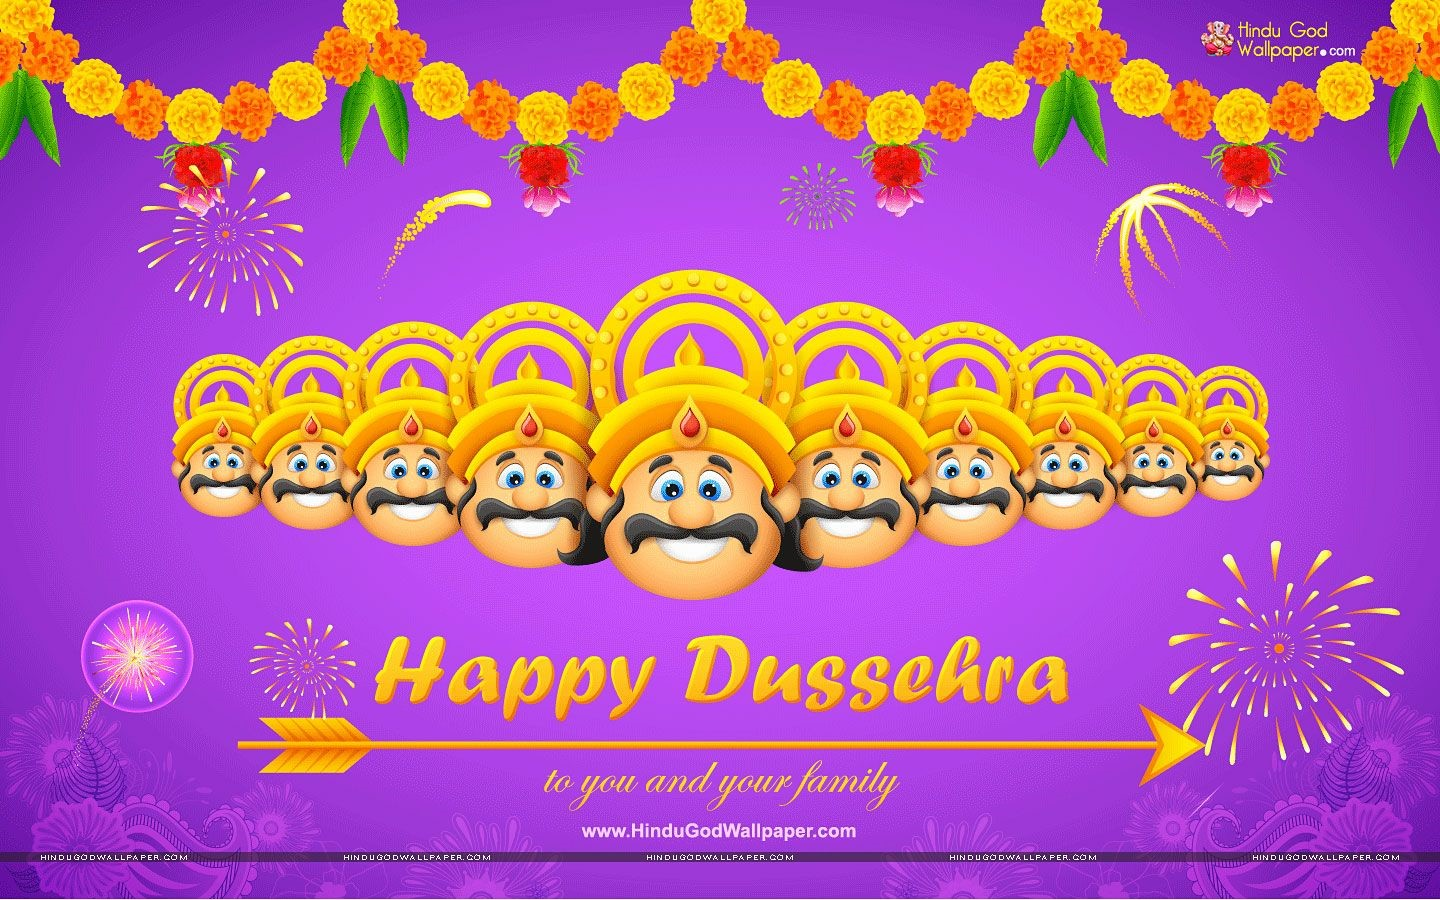 Happy Dussehra Images Download in HD